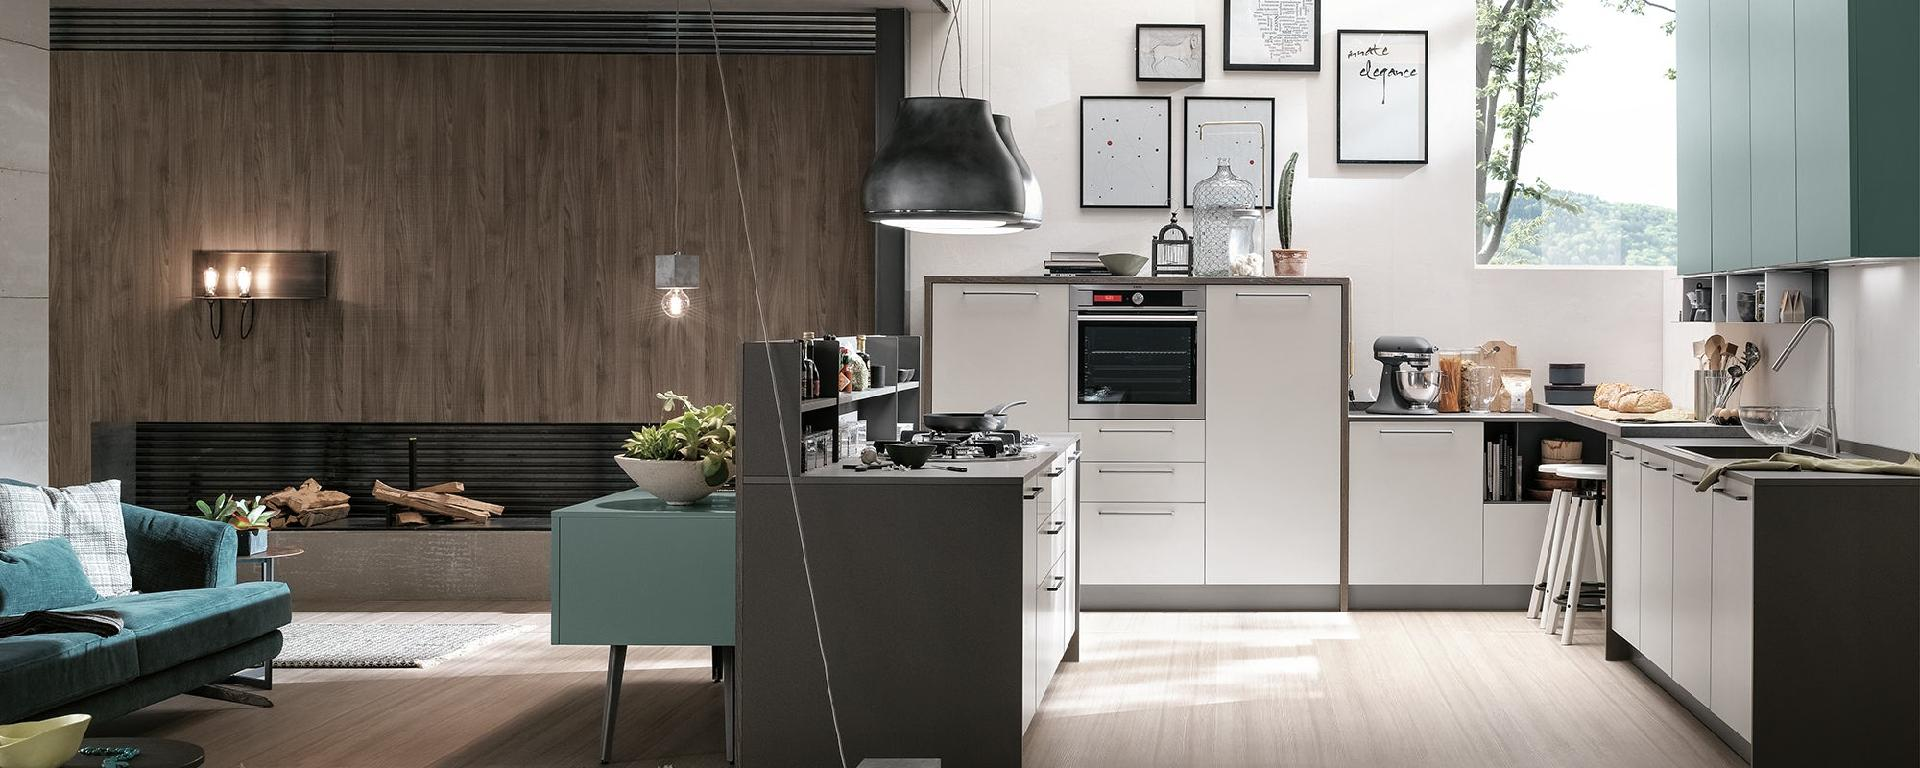 CUCINE COMPONIBILI MODERNE STOSA REPLAY - Trapani